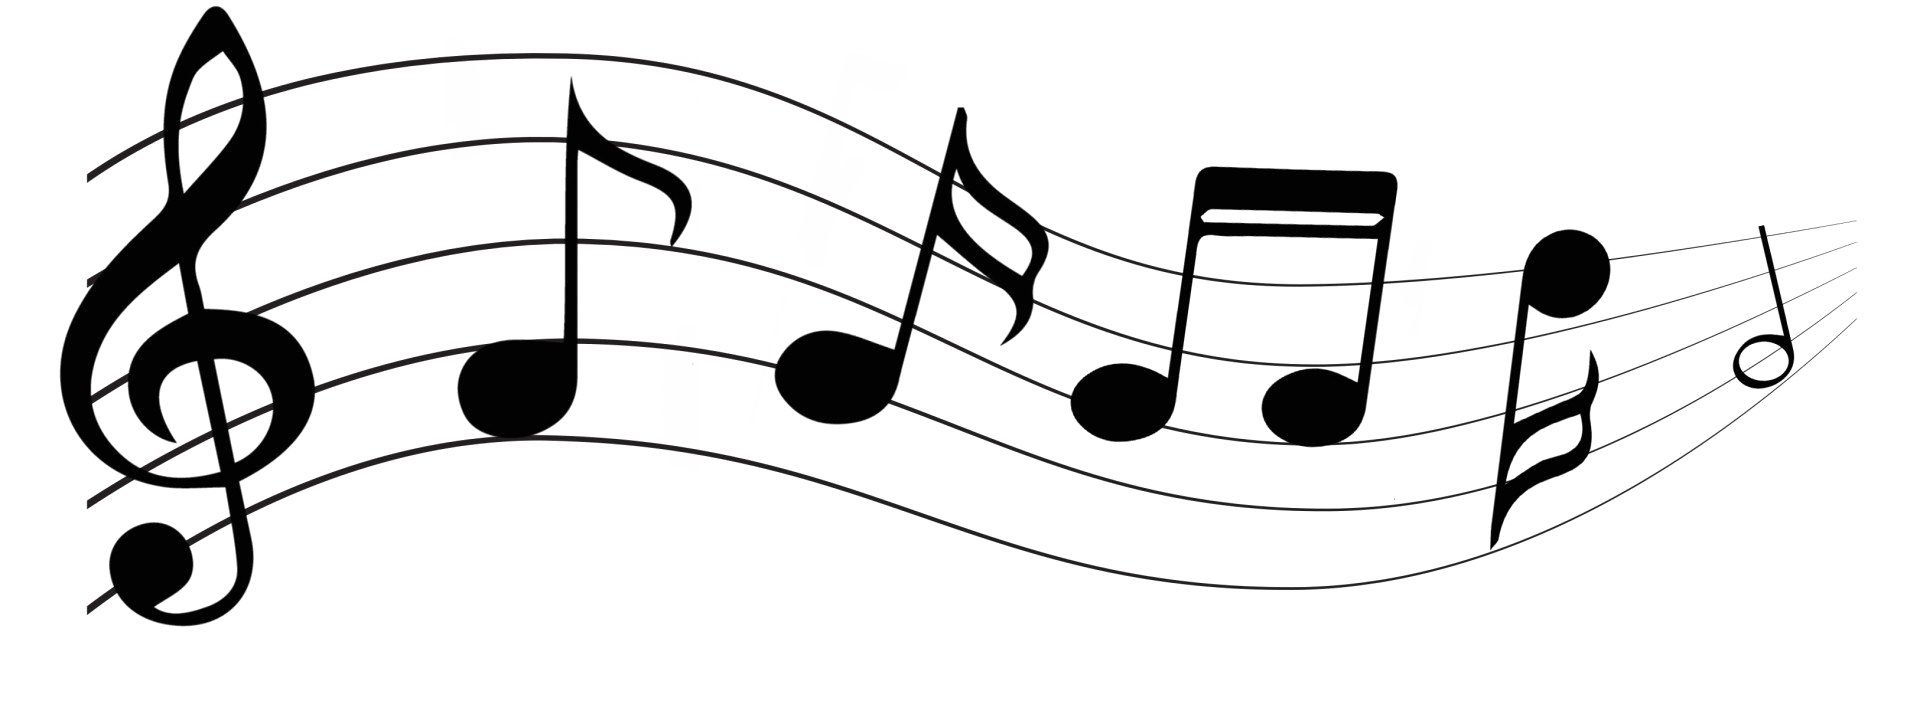 Download Musical Notation Symbol Images Free Clipart HD HQ ...